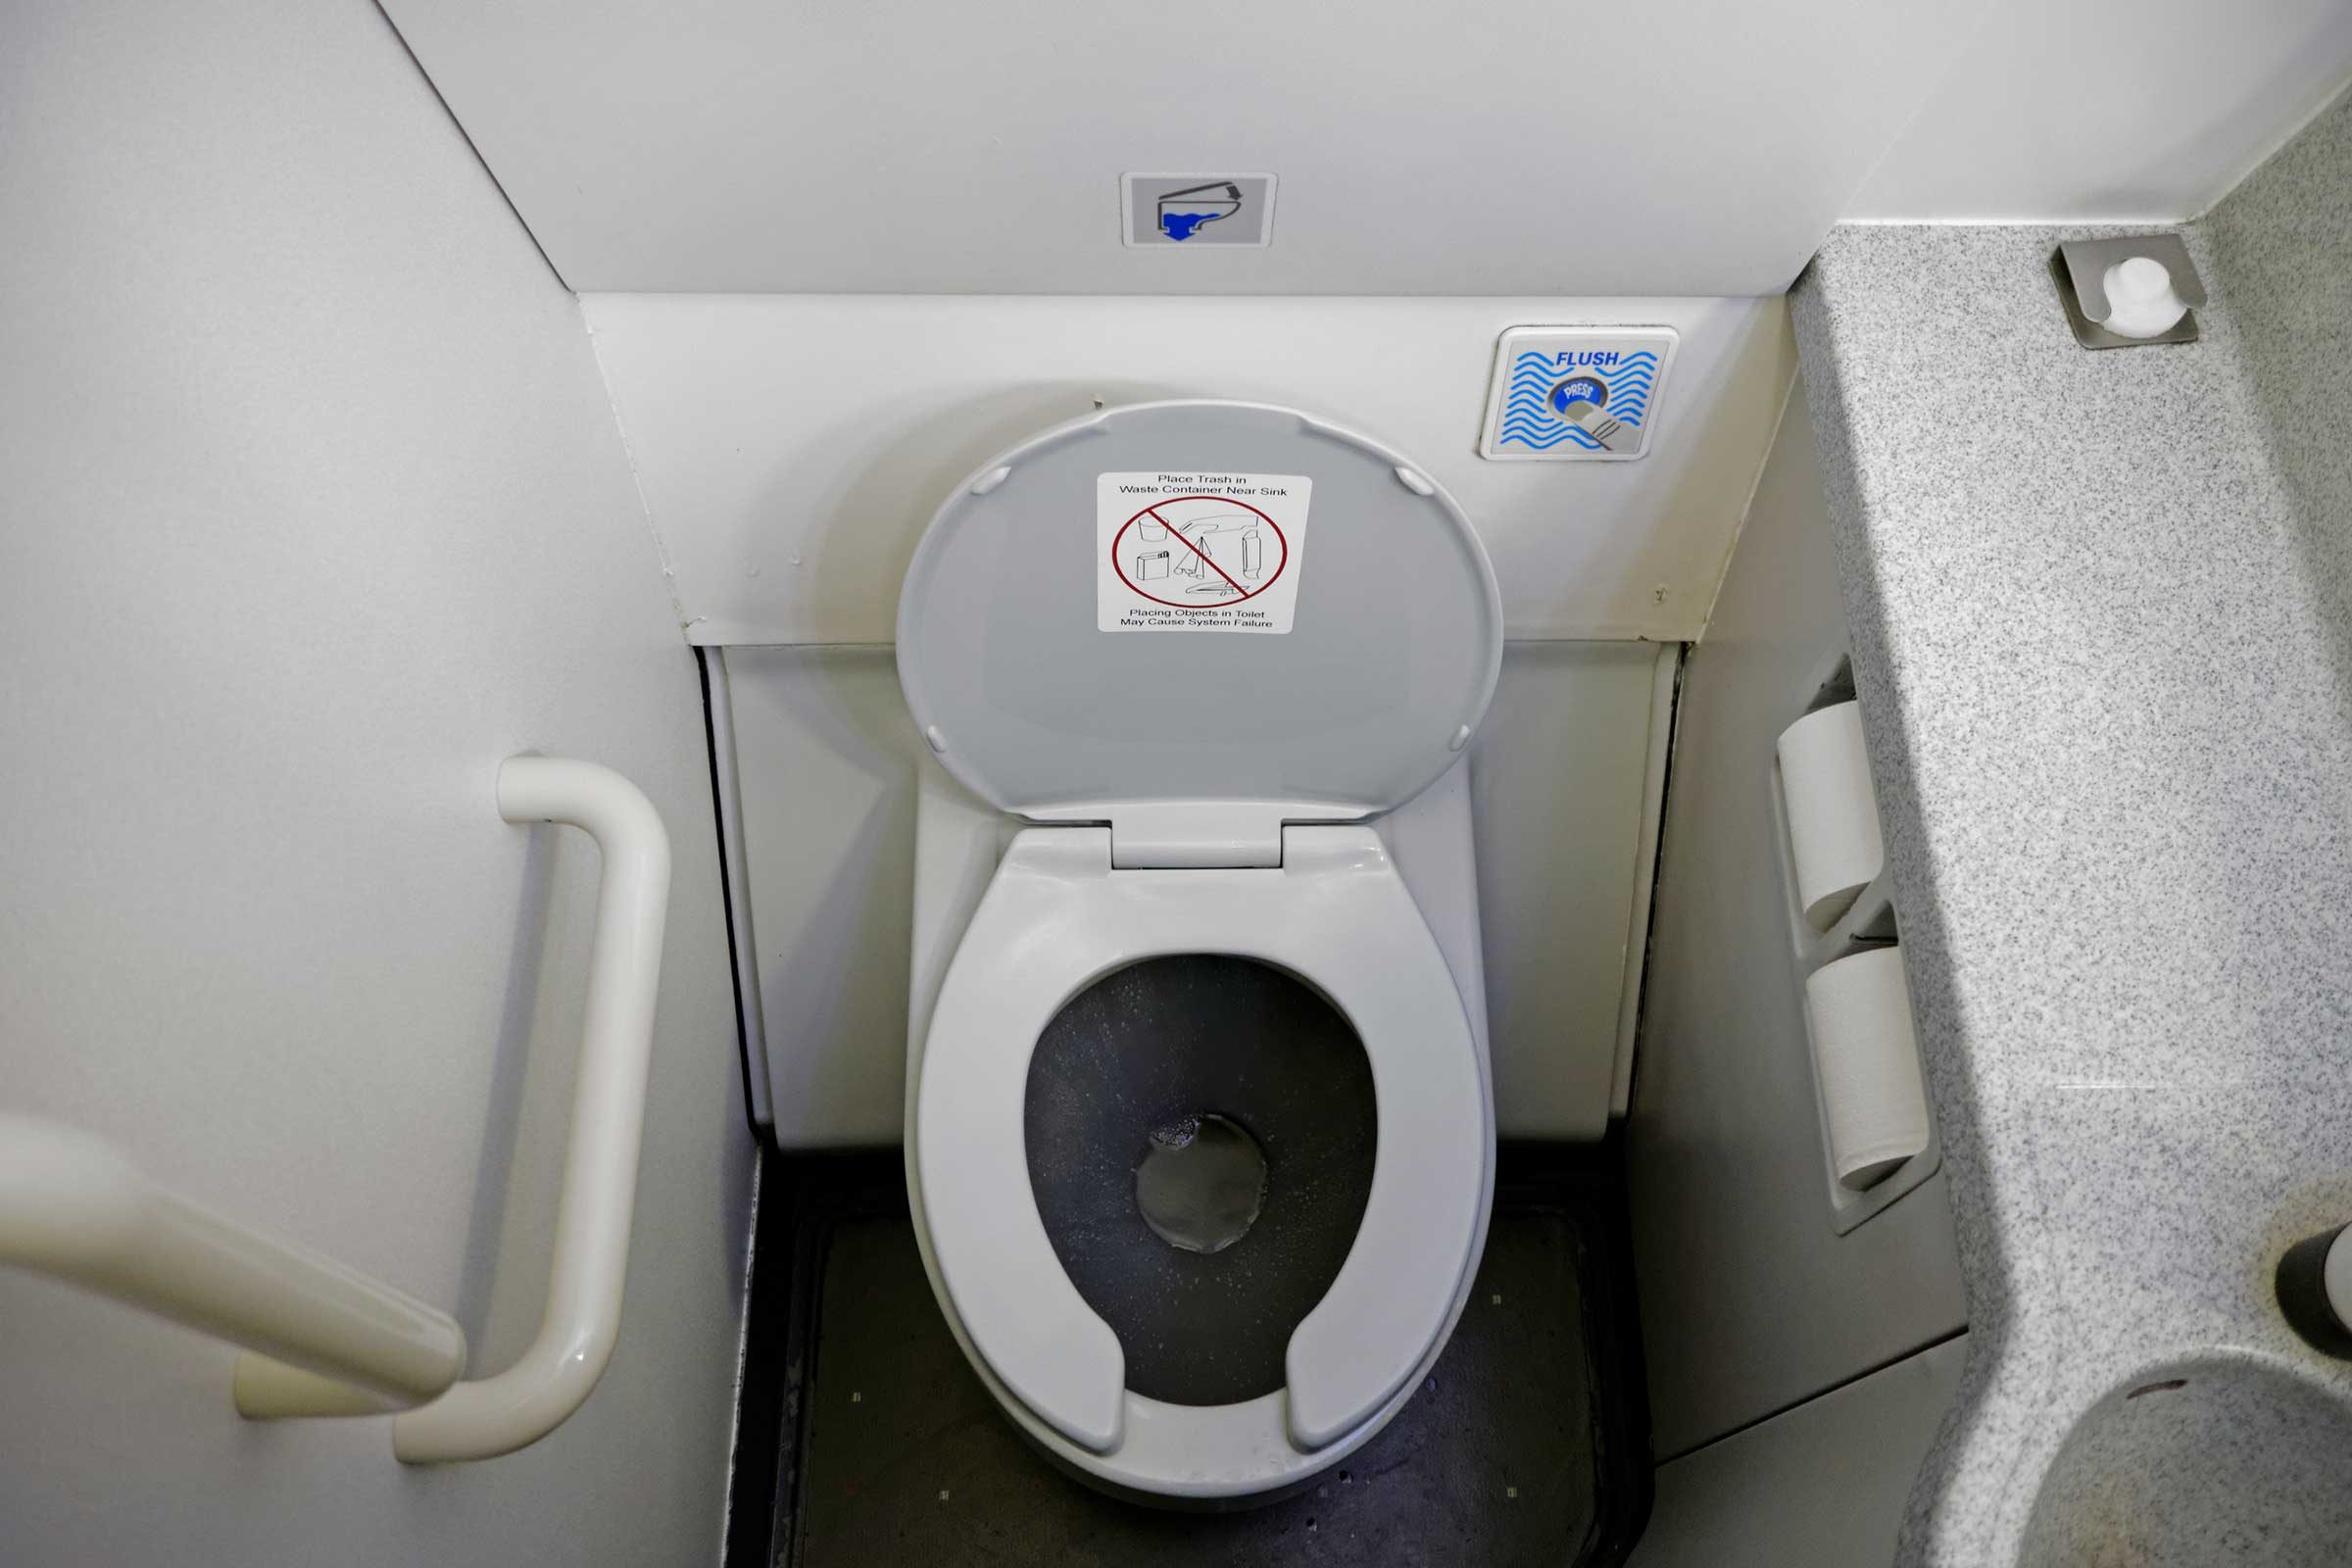 11_flush_button_travel_tips_airplane_wellesenterprises